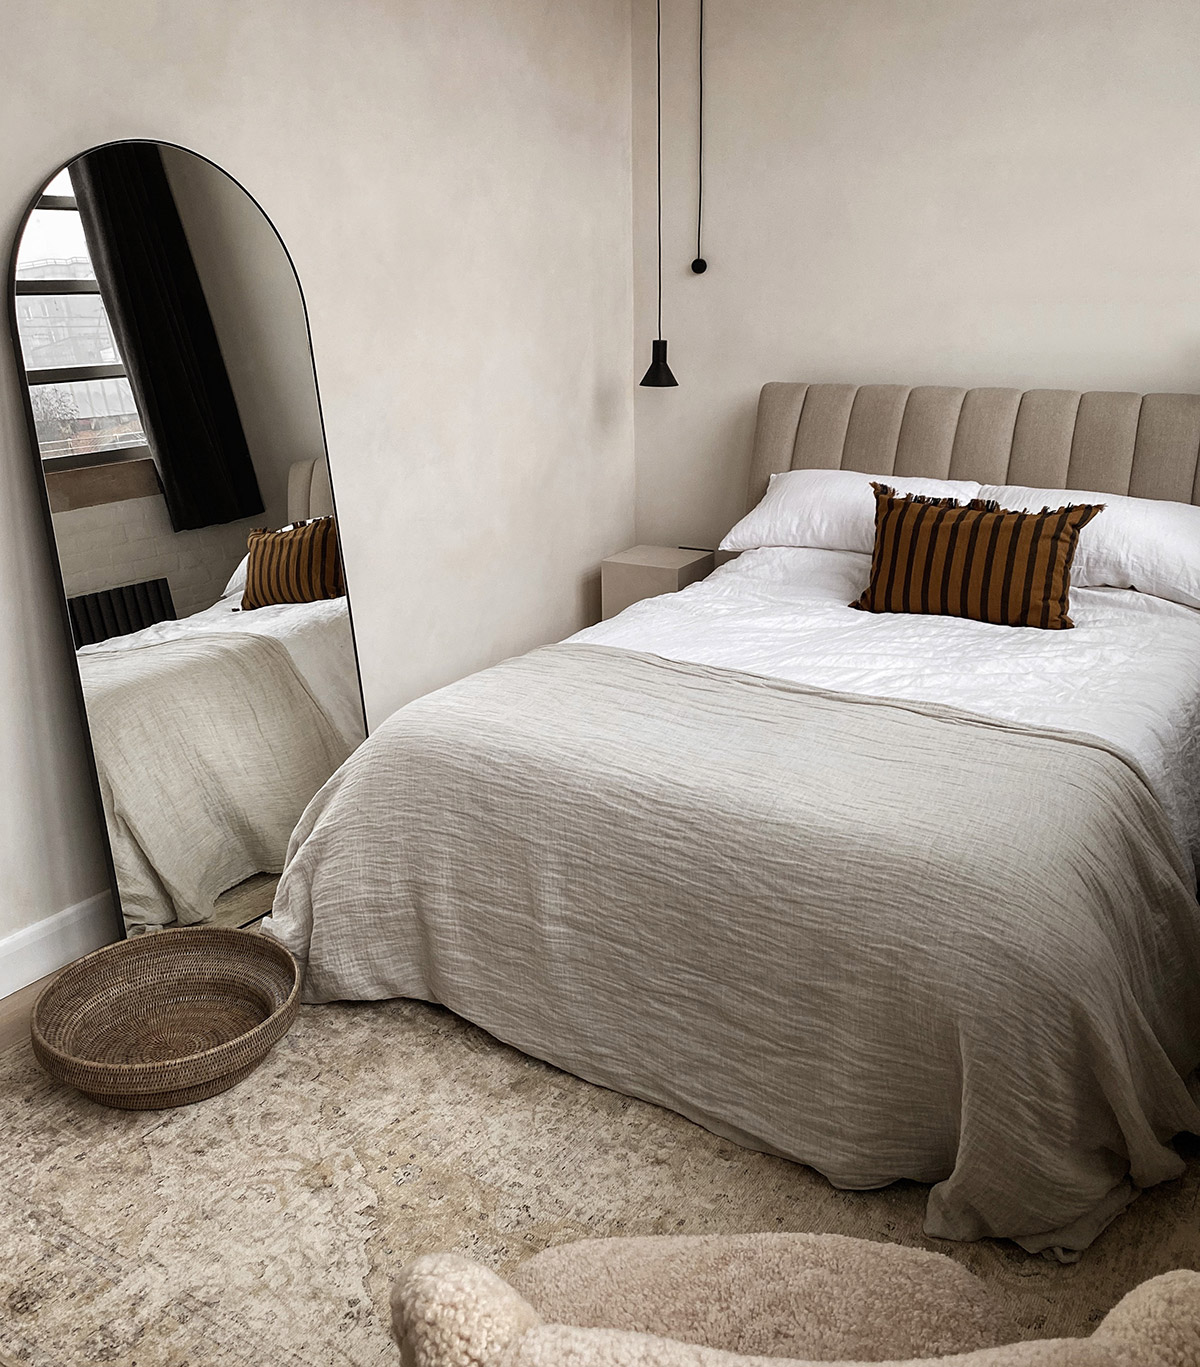 Lisa Mistry's neutral and textural master bedroom